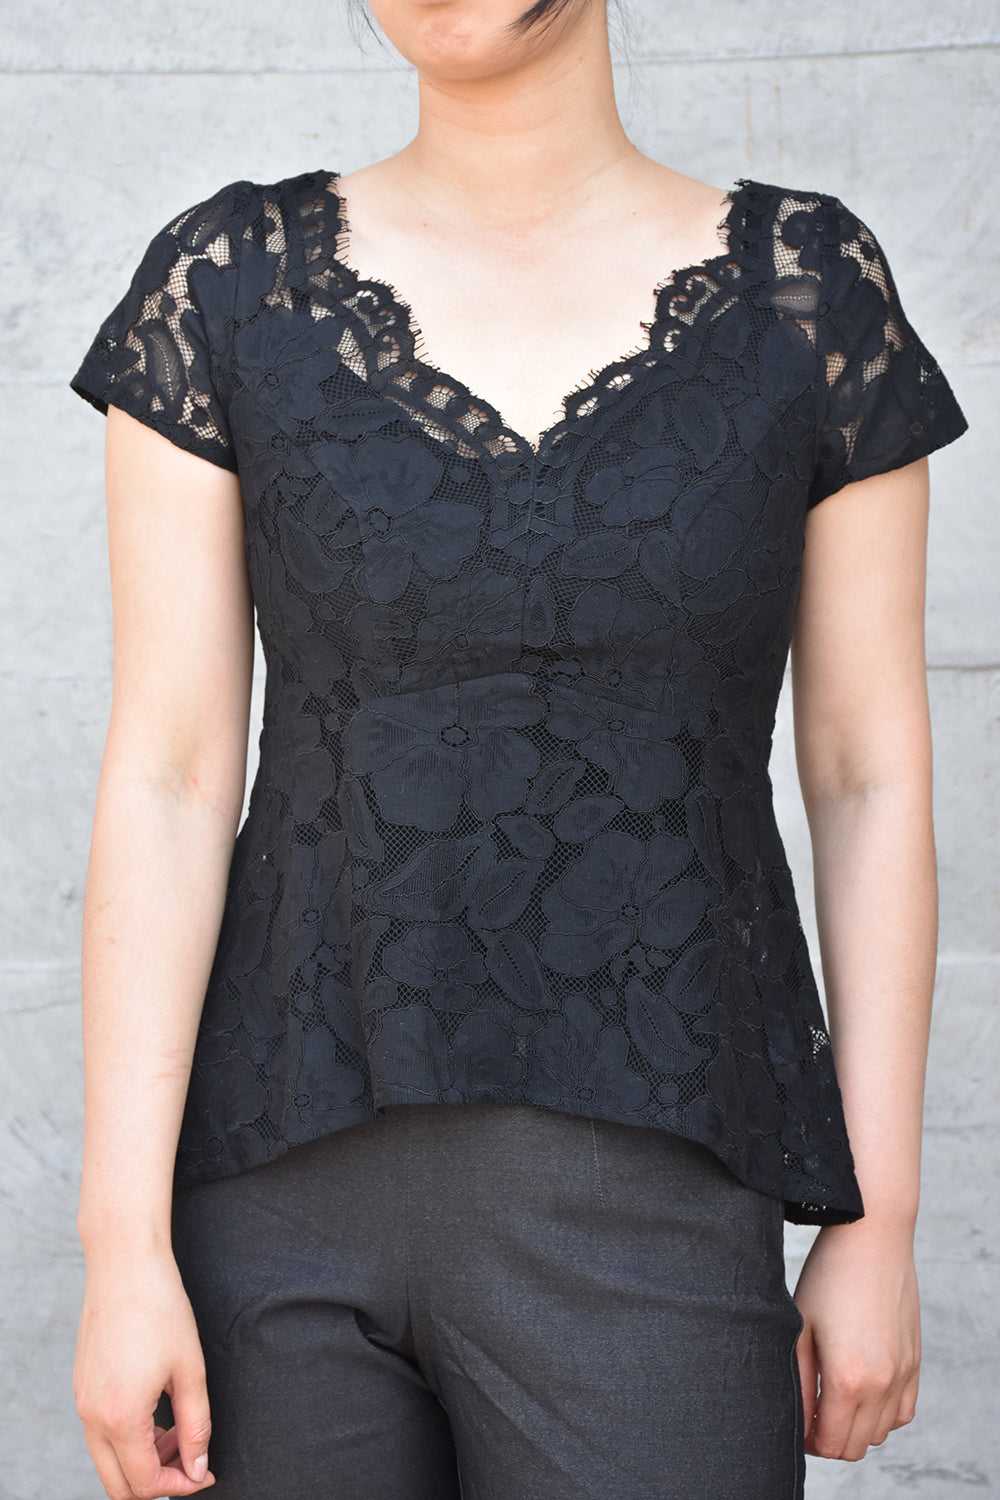 Poppy Posey Top - Black